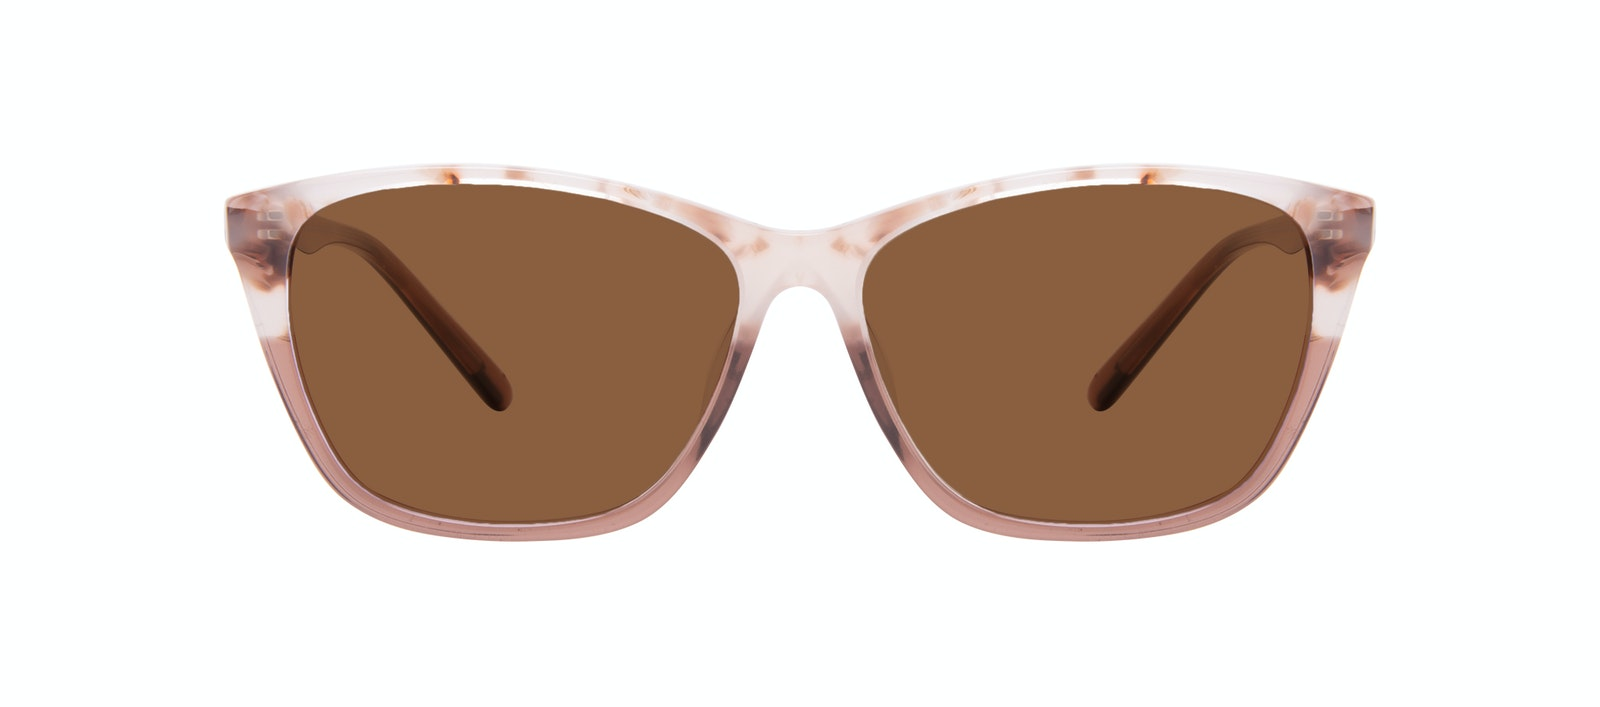 Affordable Fashion Glasses Cat Eye Rectangle Sunglasses Women Myrtle Frosted Sand Front